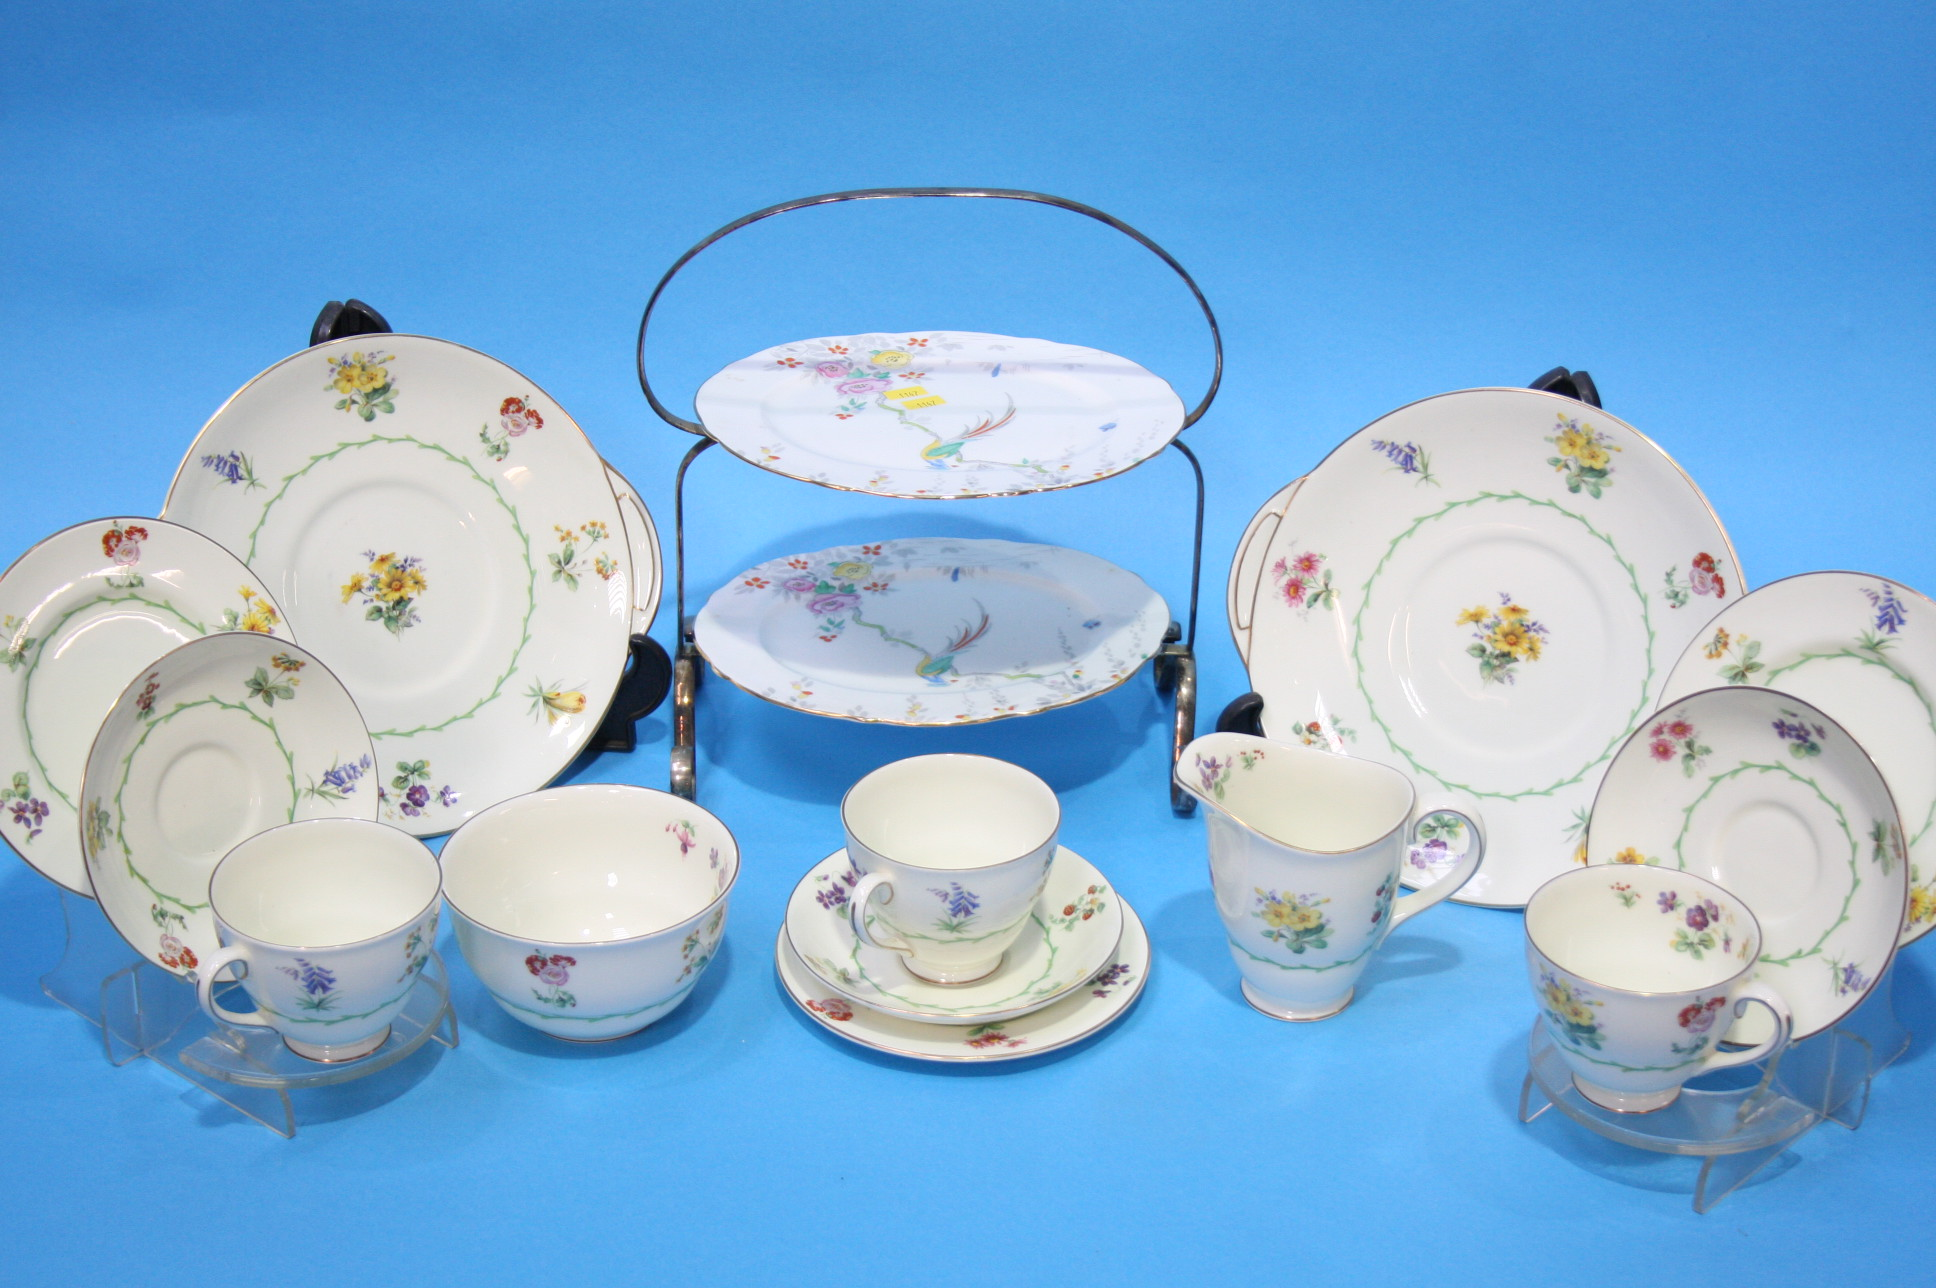 Lot 11 - A Royal Doulton floral tea set and a cake stand.